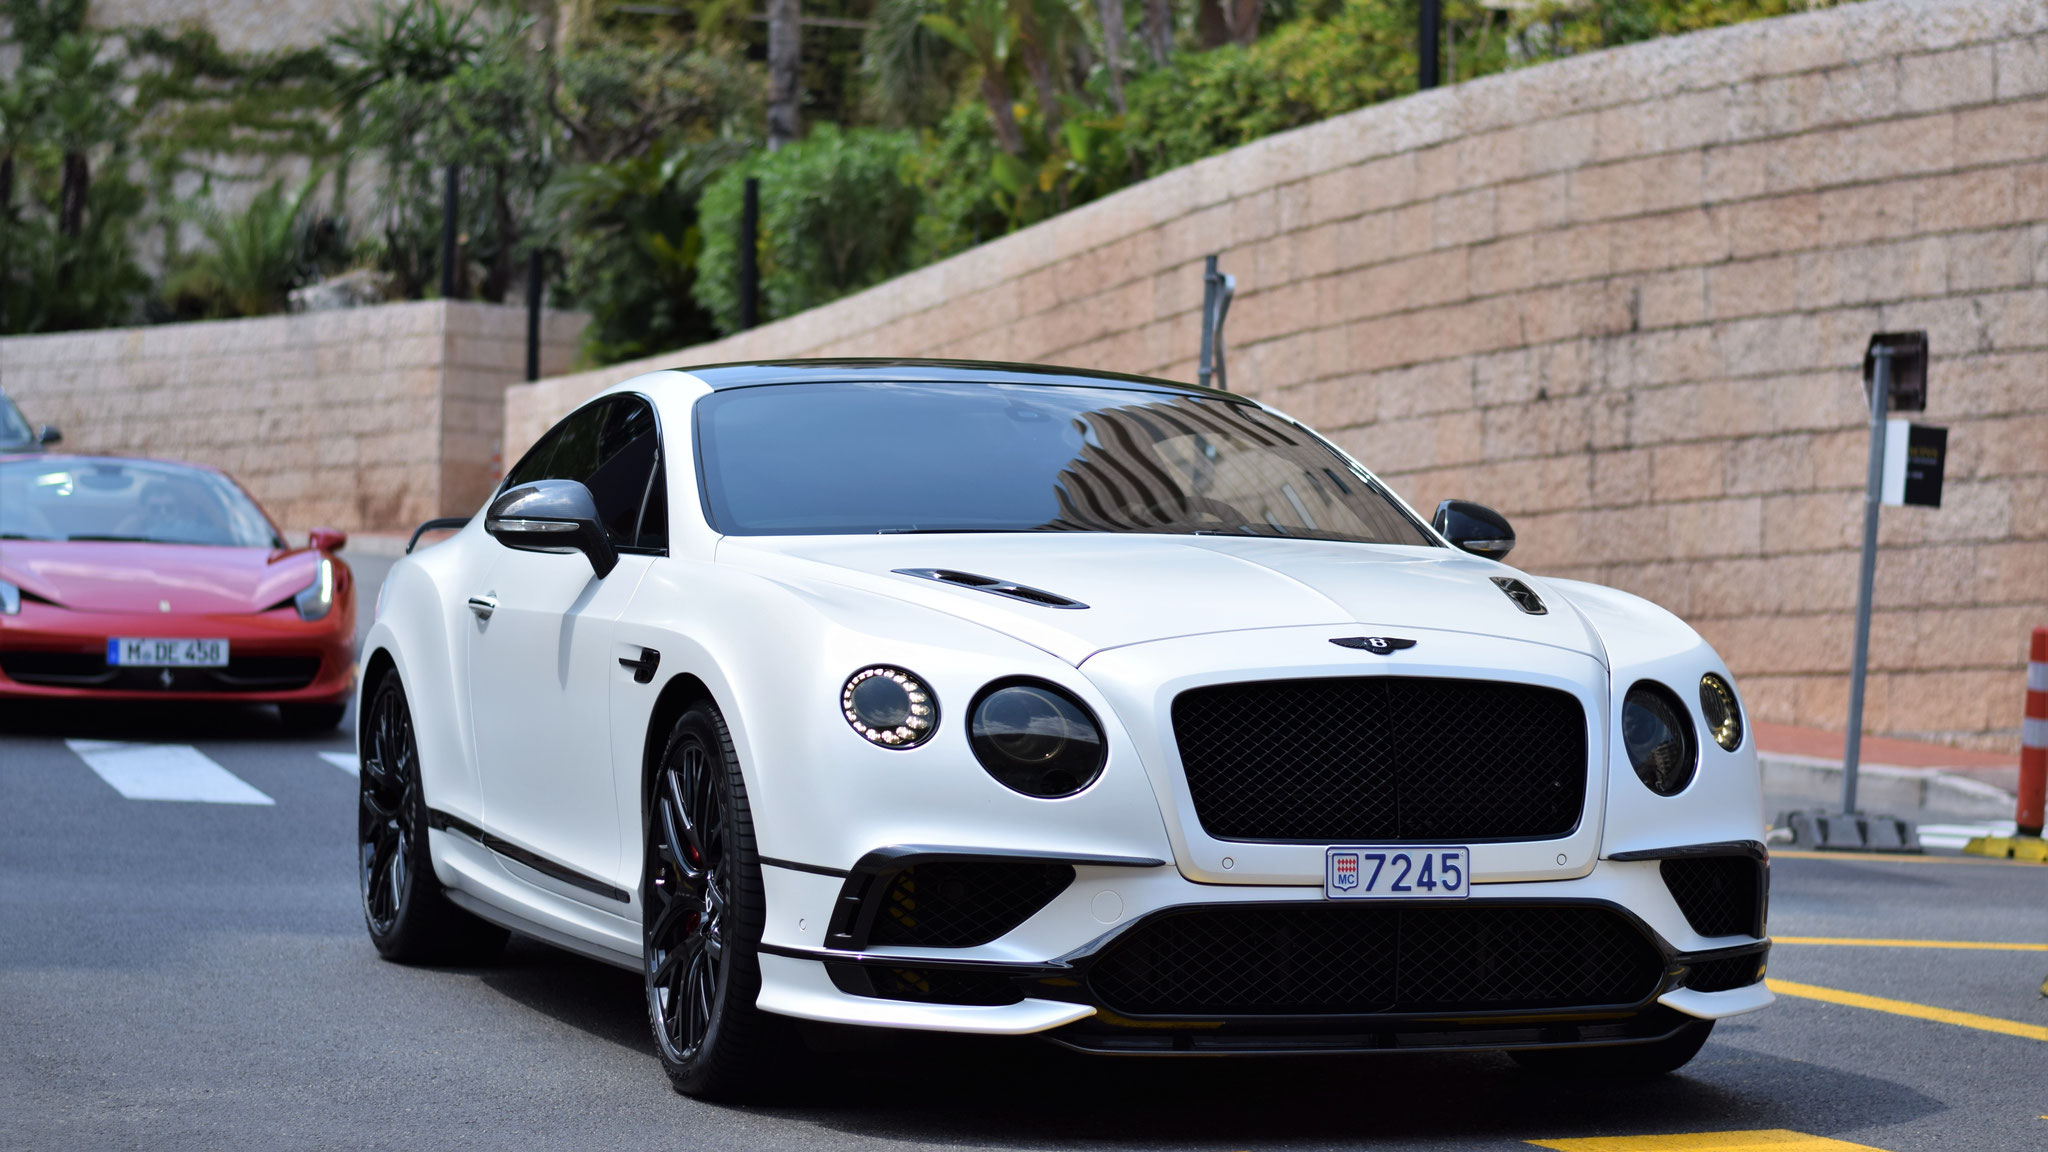 Bentley Continental GT Supersports - 7245 (MC)